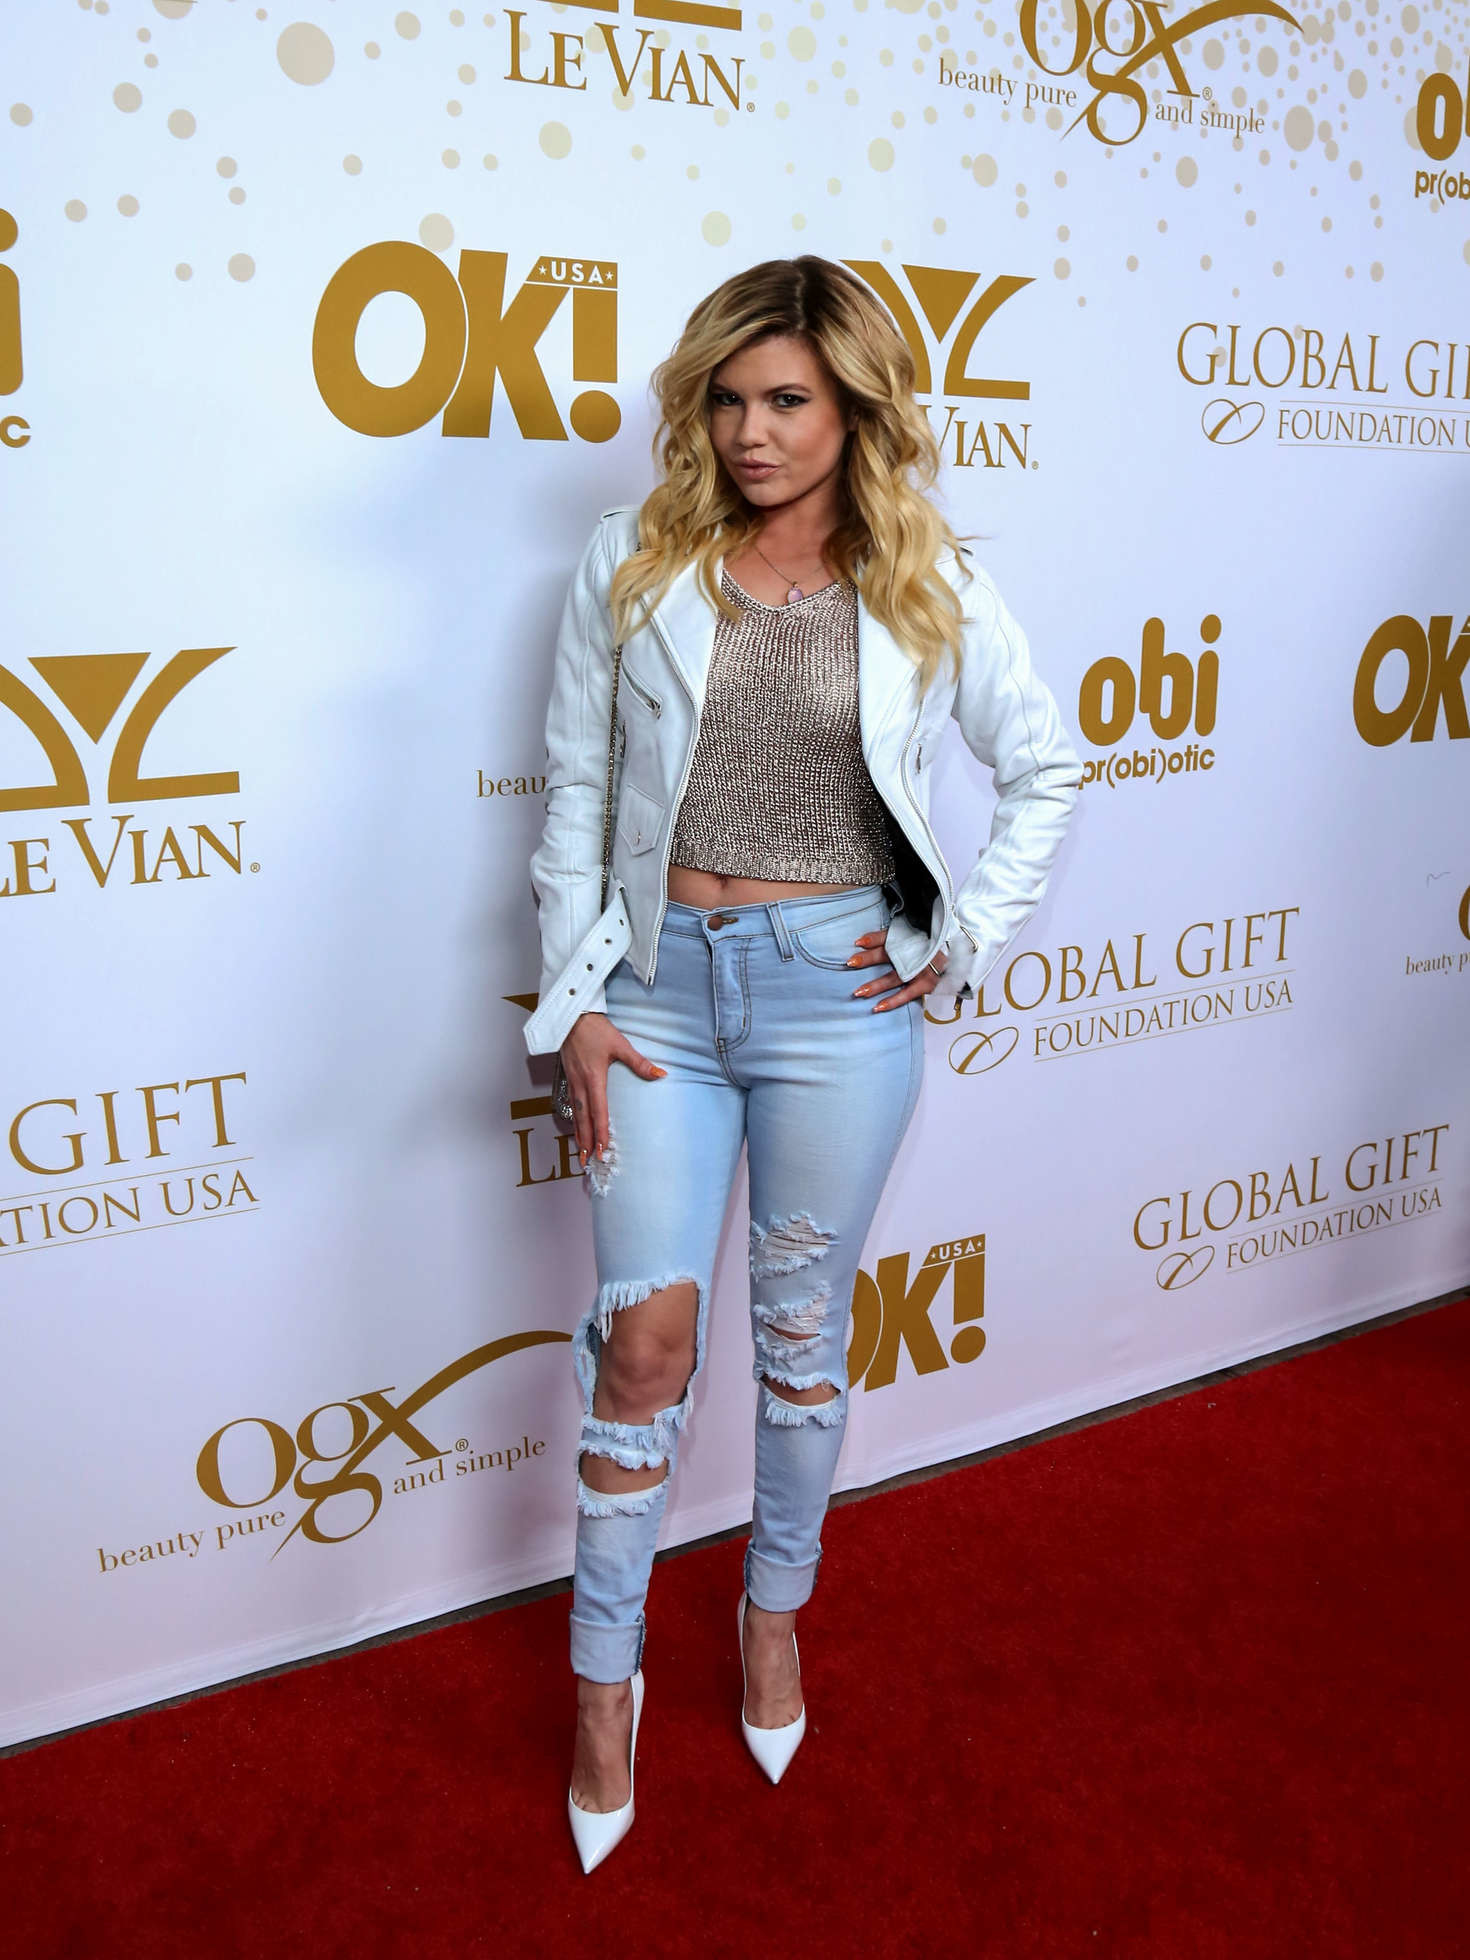 Chanel West Coast: OK Magazines Pre-Oscar Party 2016 -14 – Full Size